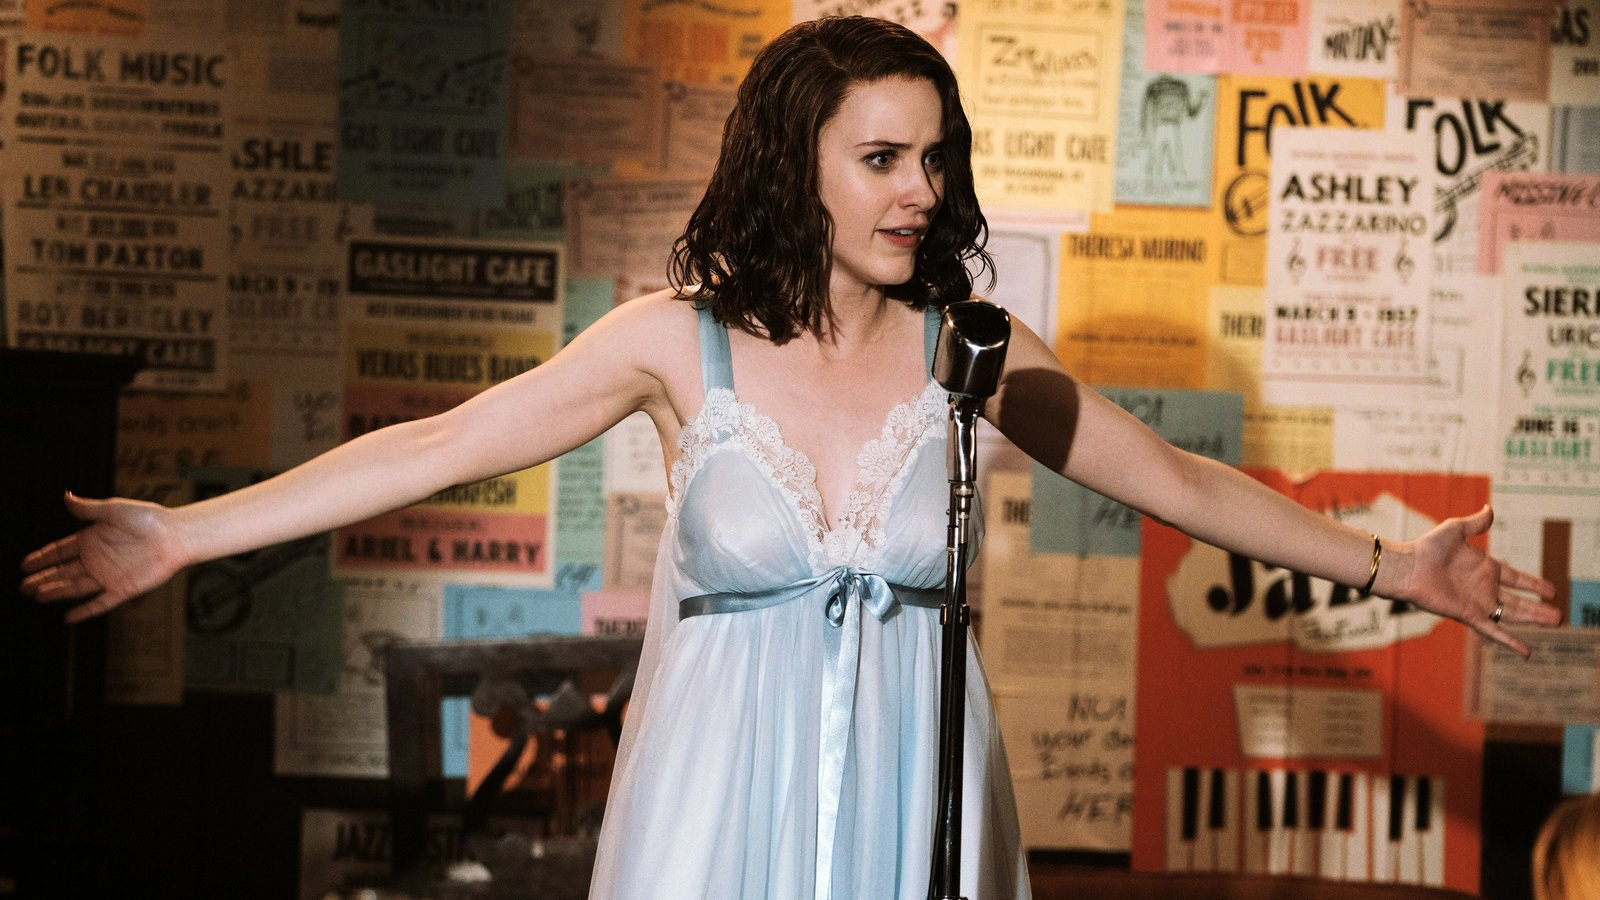 Television Review: THE MARVELOUS MRS. MAISEL